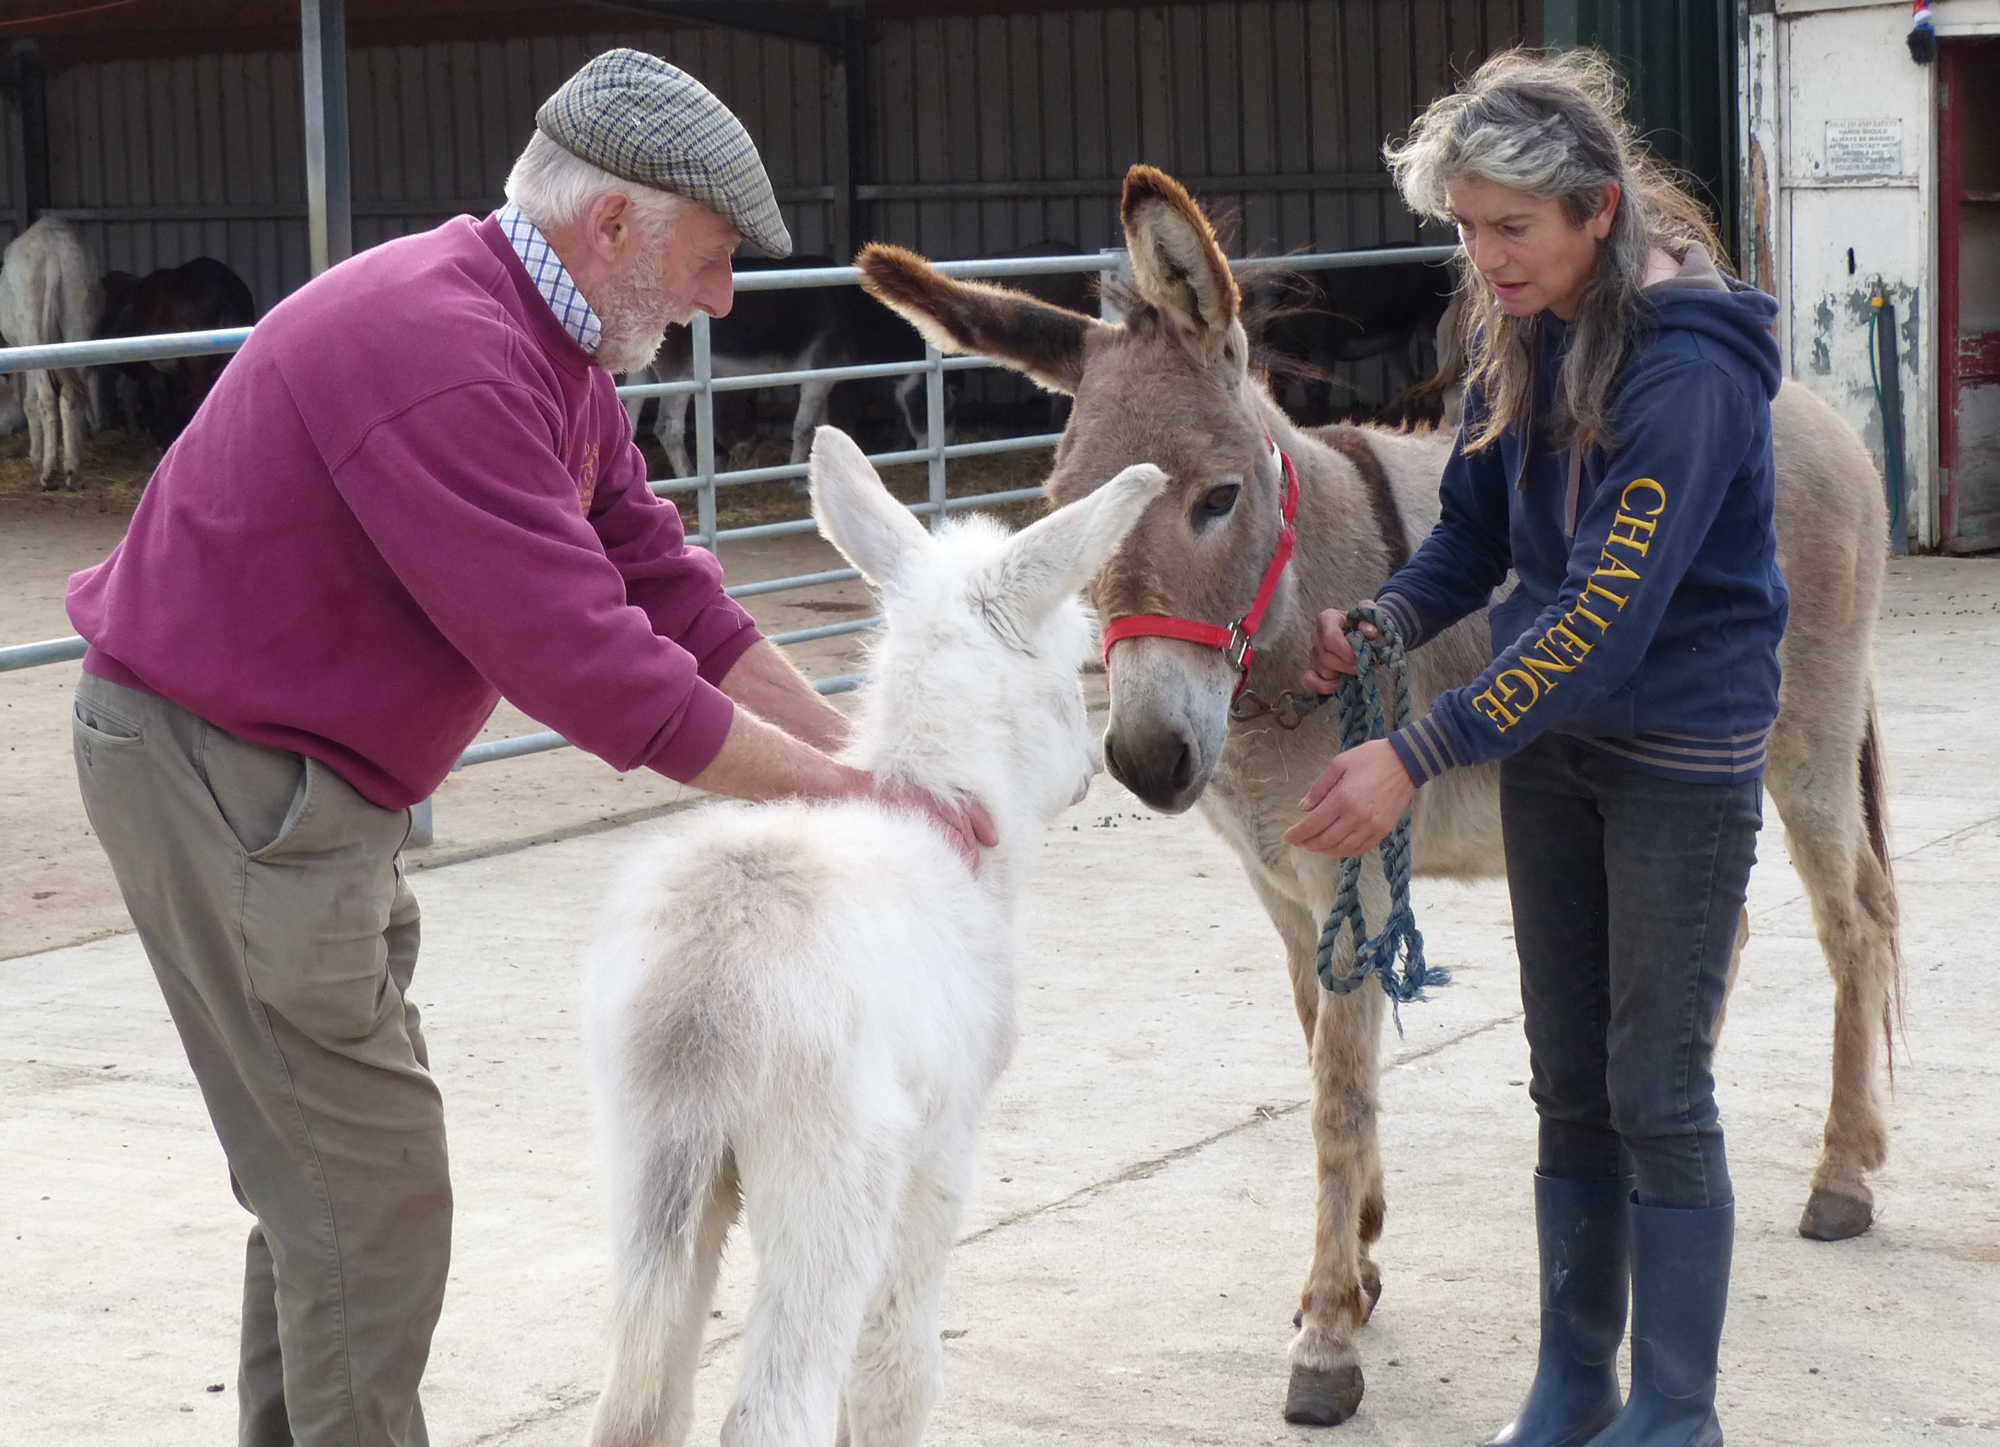 Lucas newly arrived at Island Farm donkey sanctuary